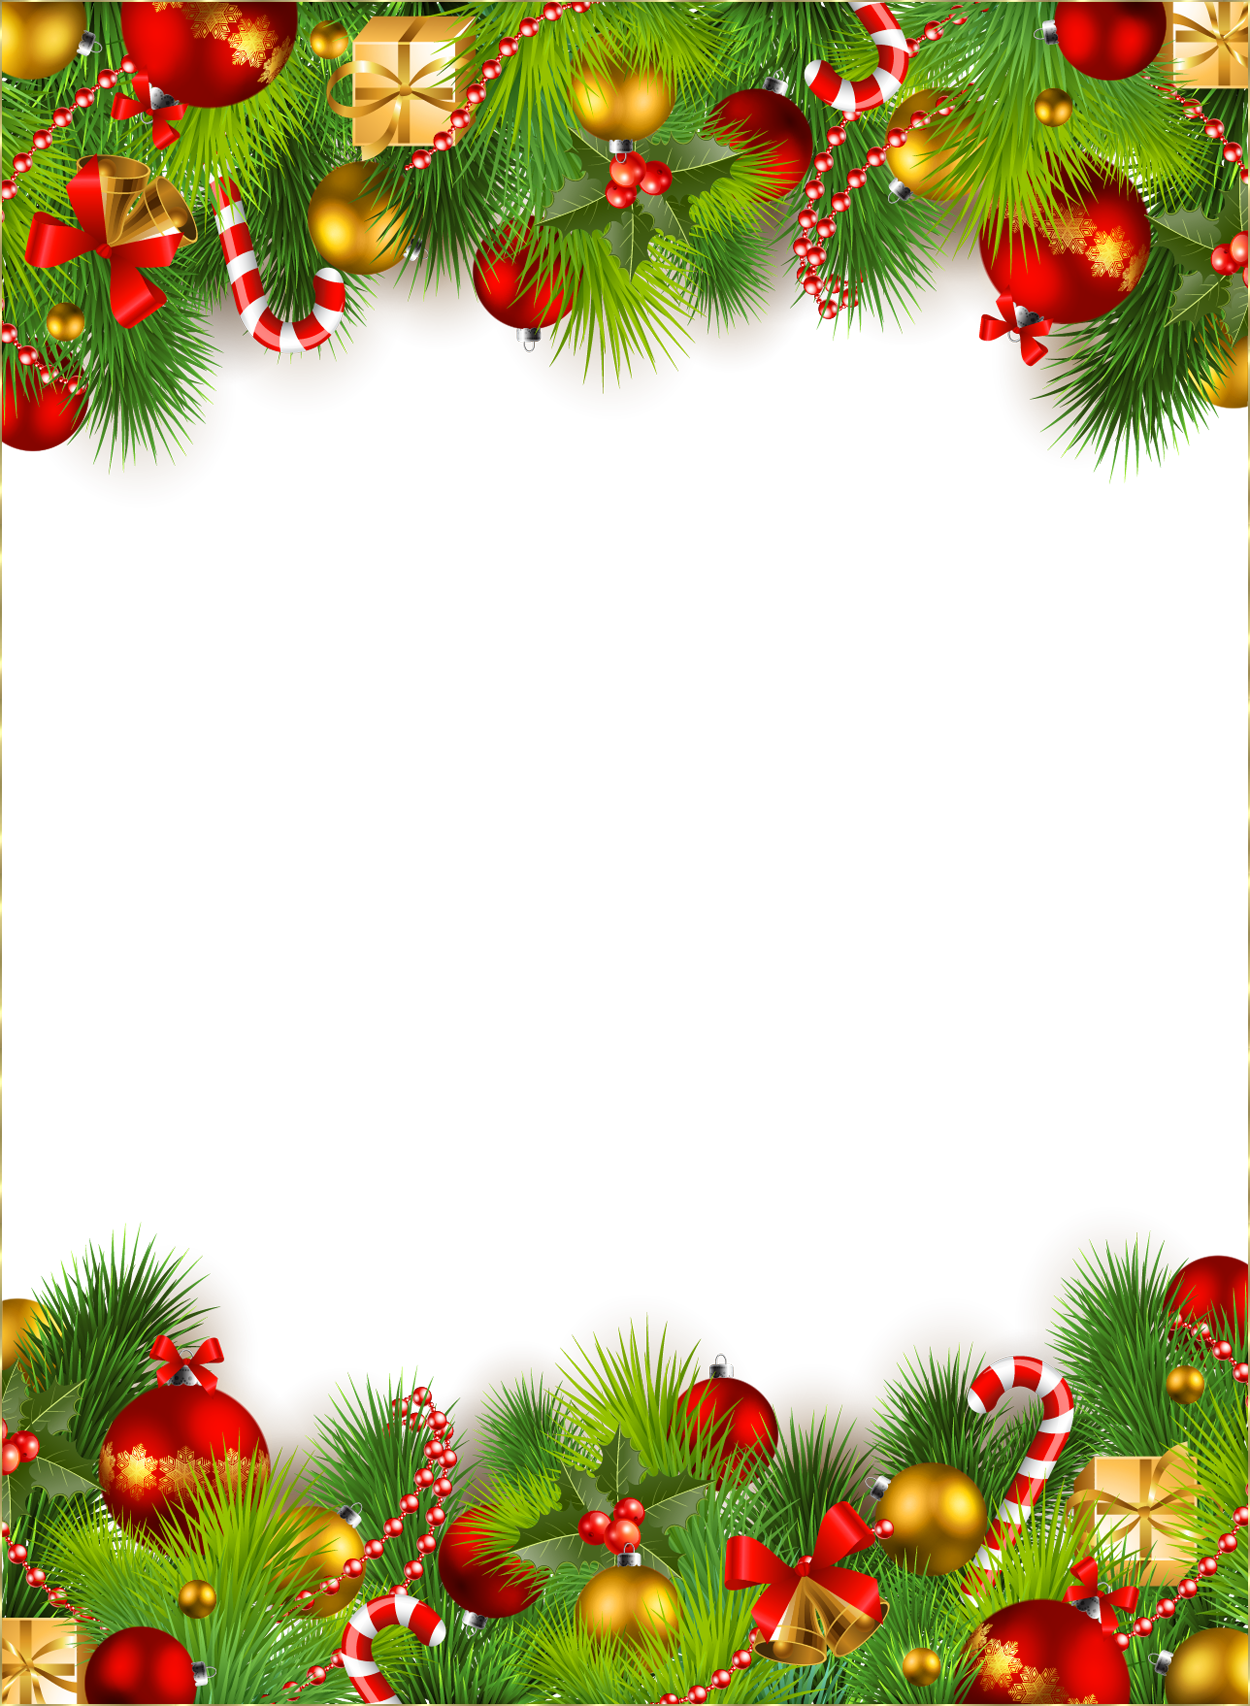 Picture frame ornaments wallpapers. Christmas ornament border png